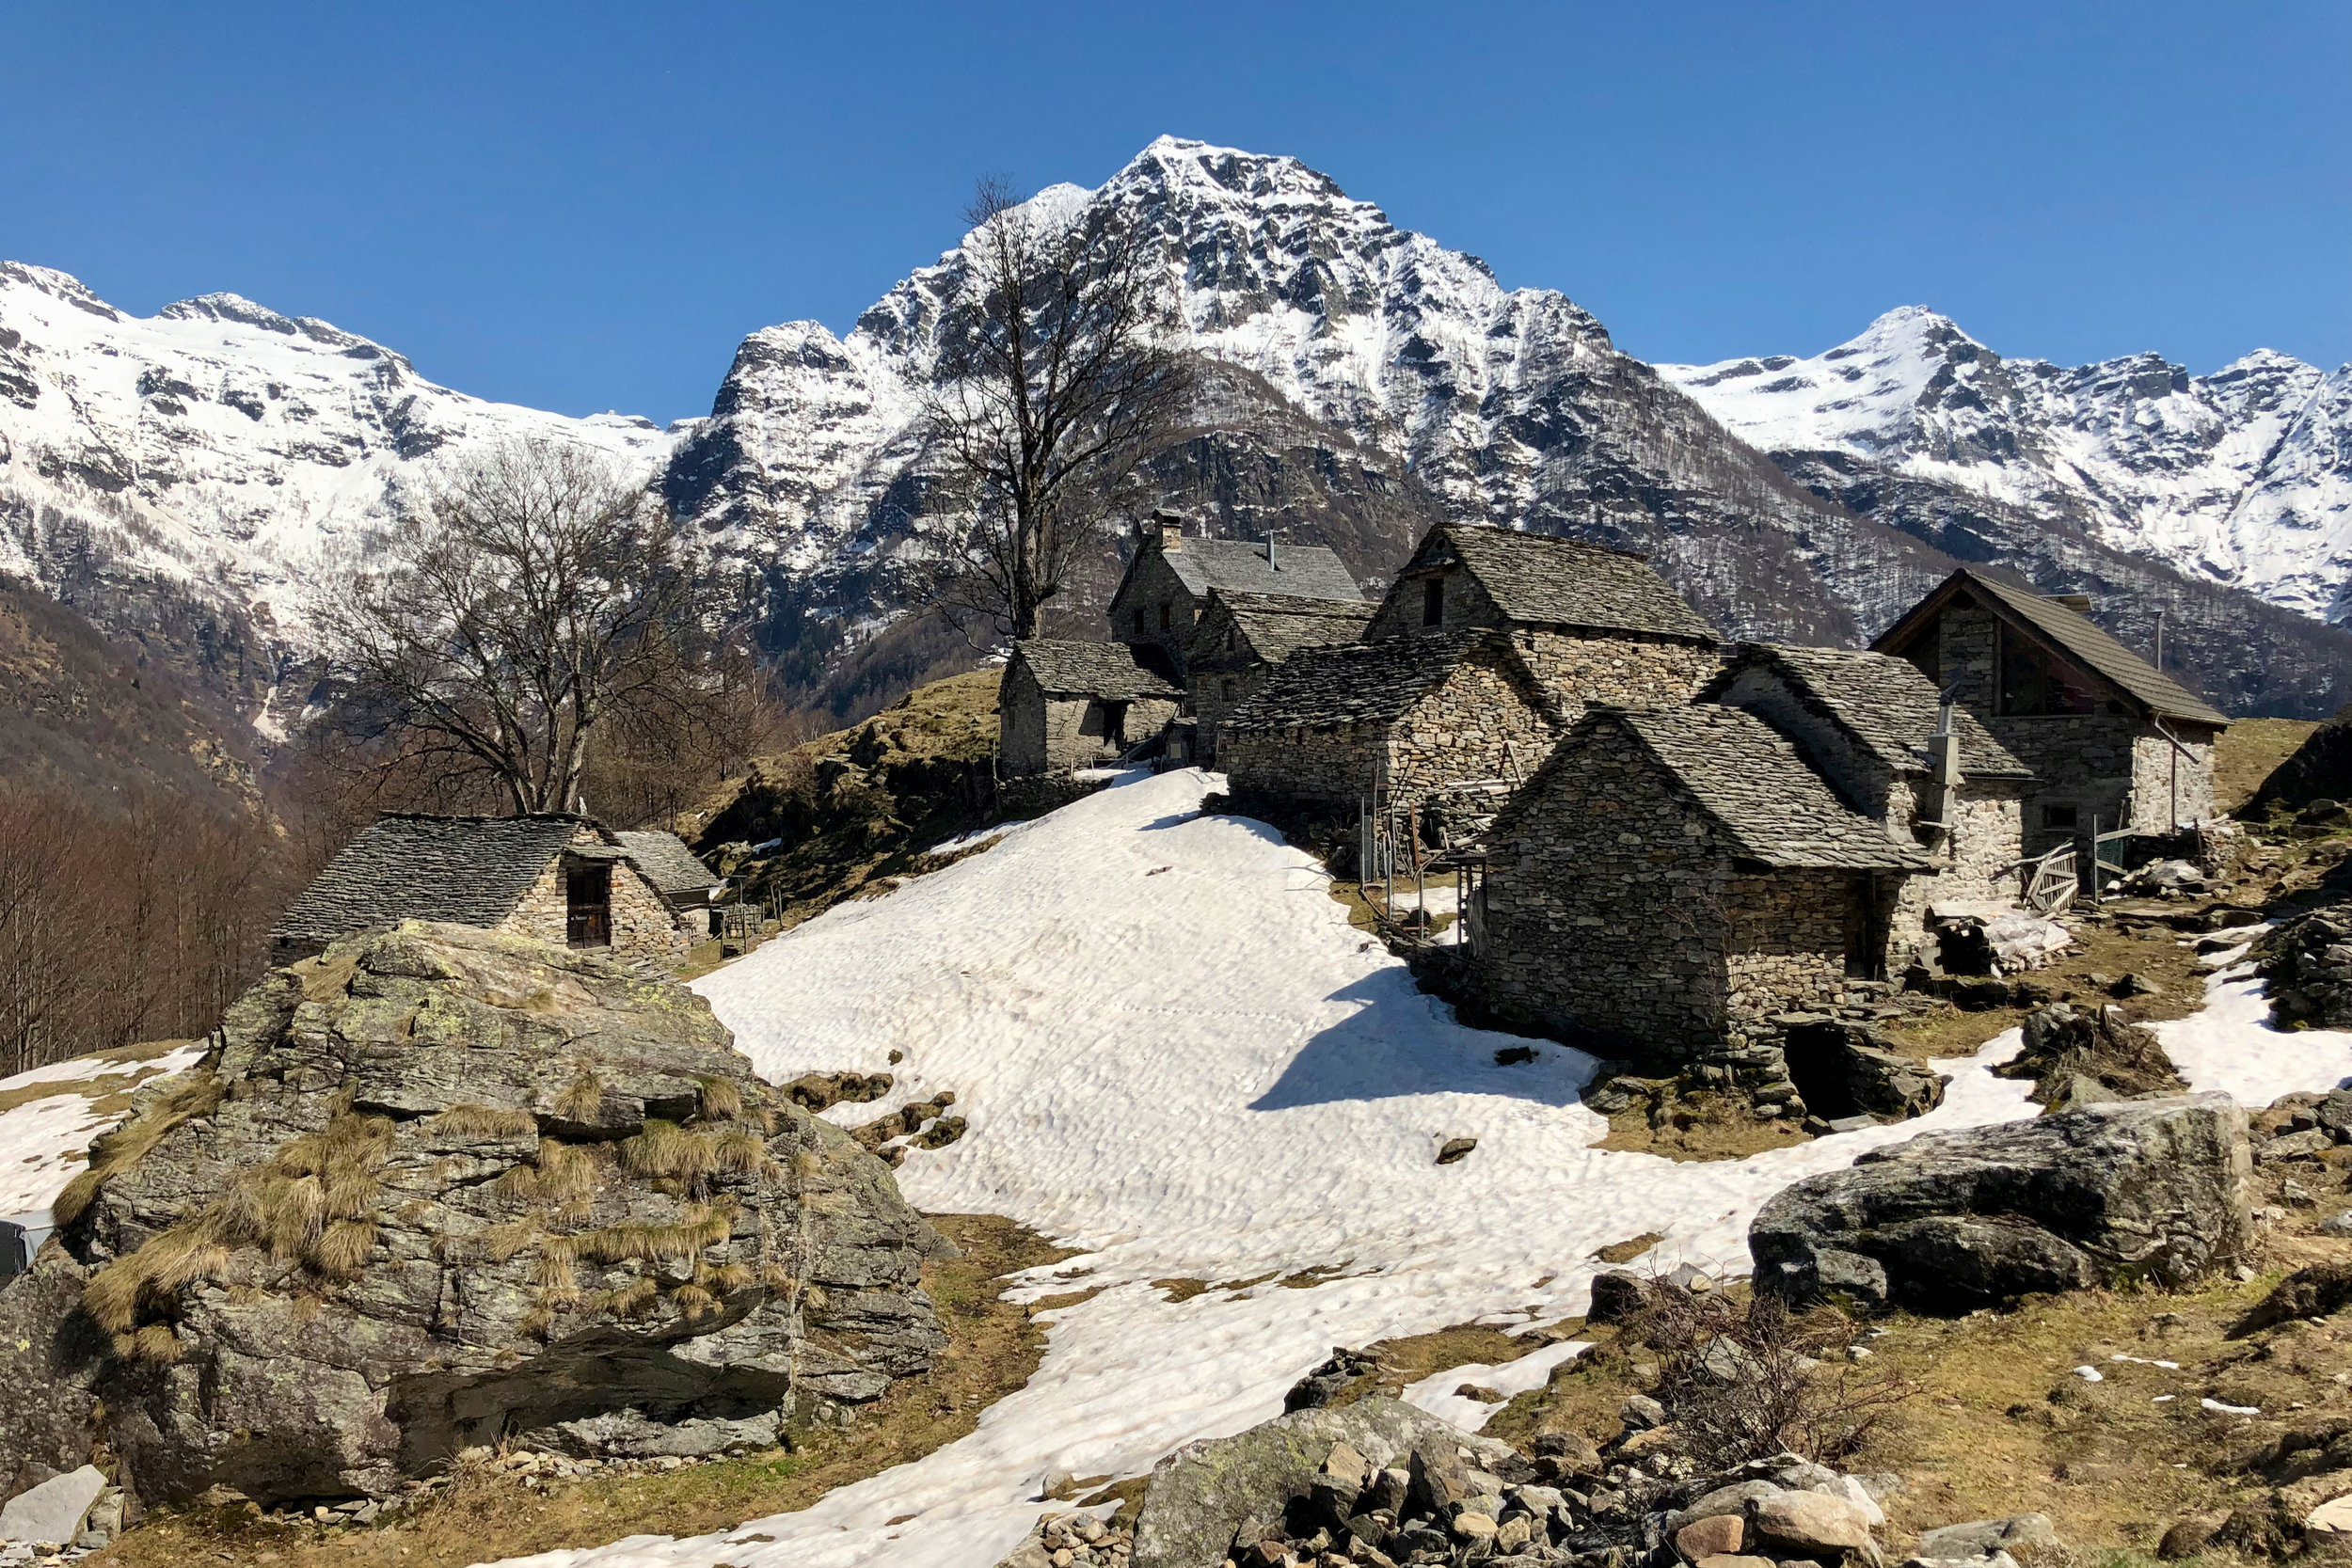 A small village of stone buildings high in the Lepontine Alps